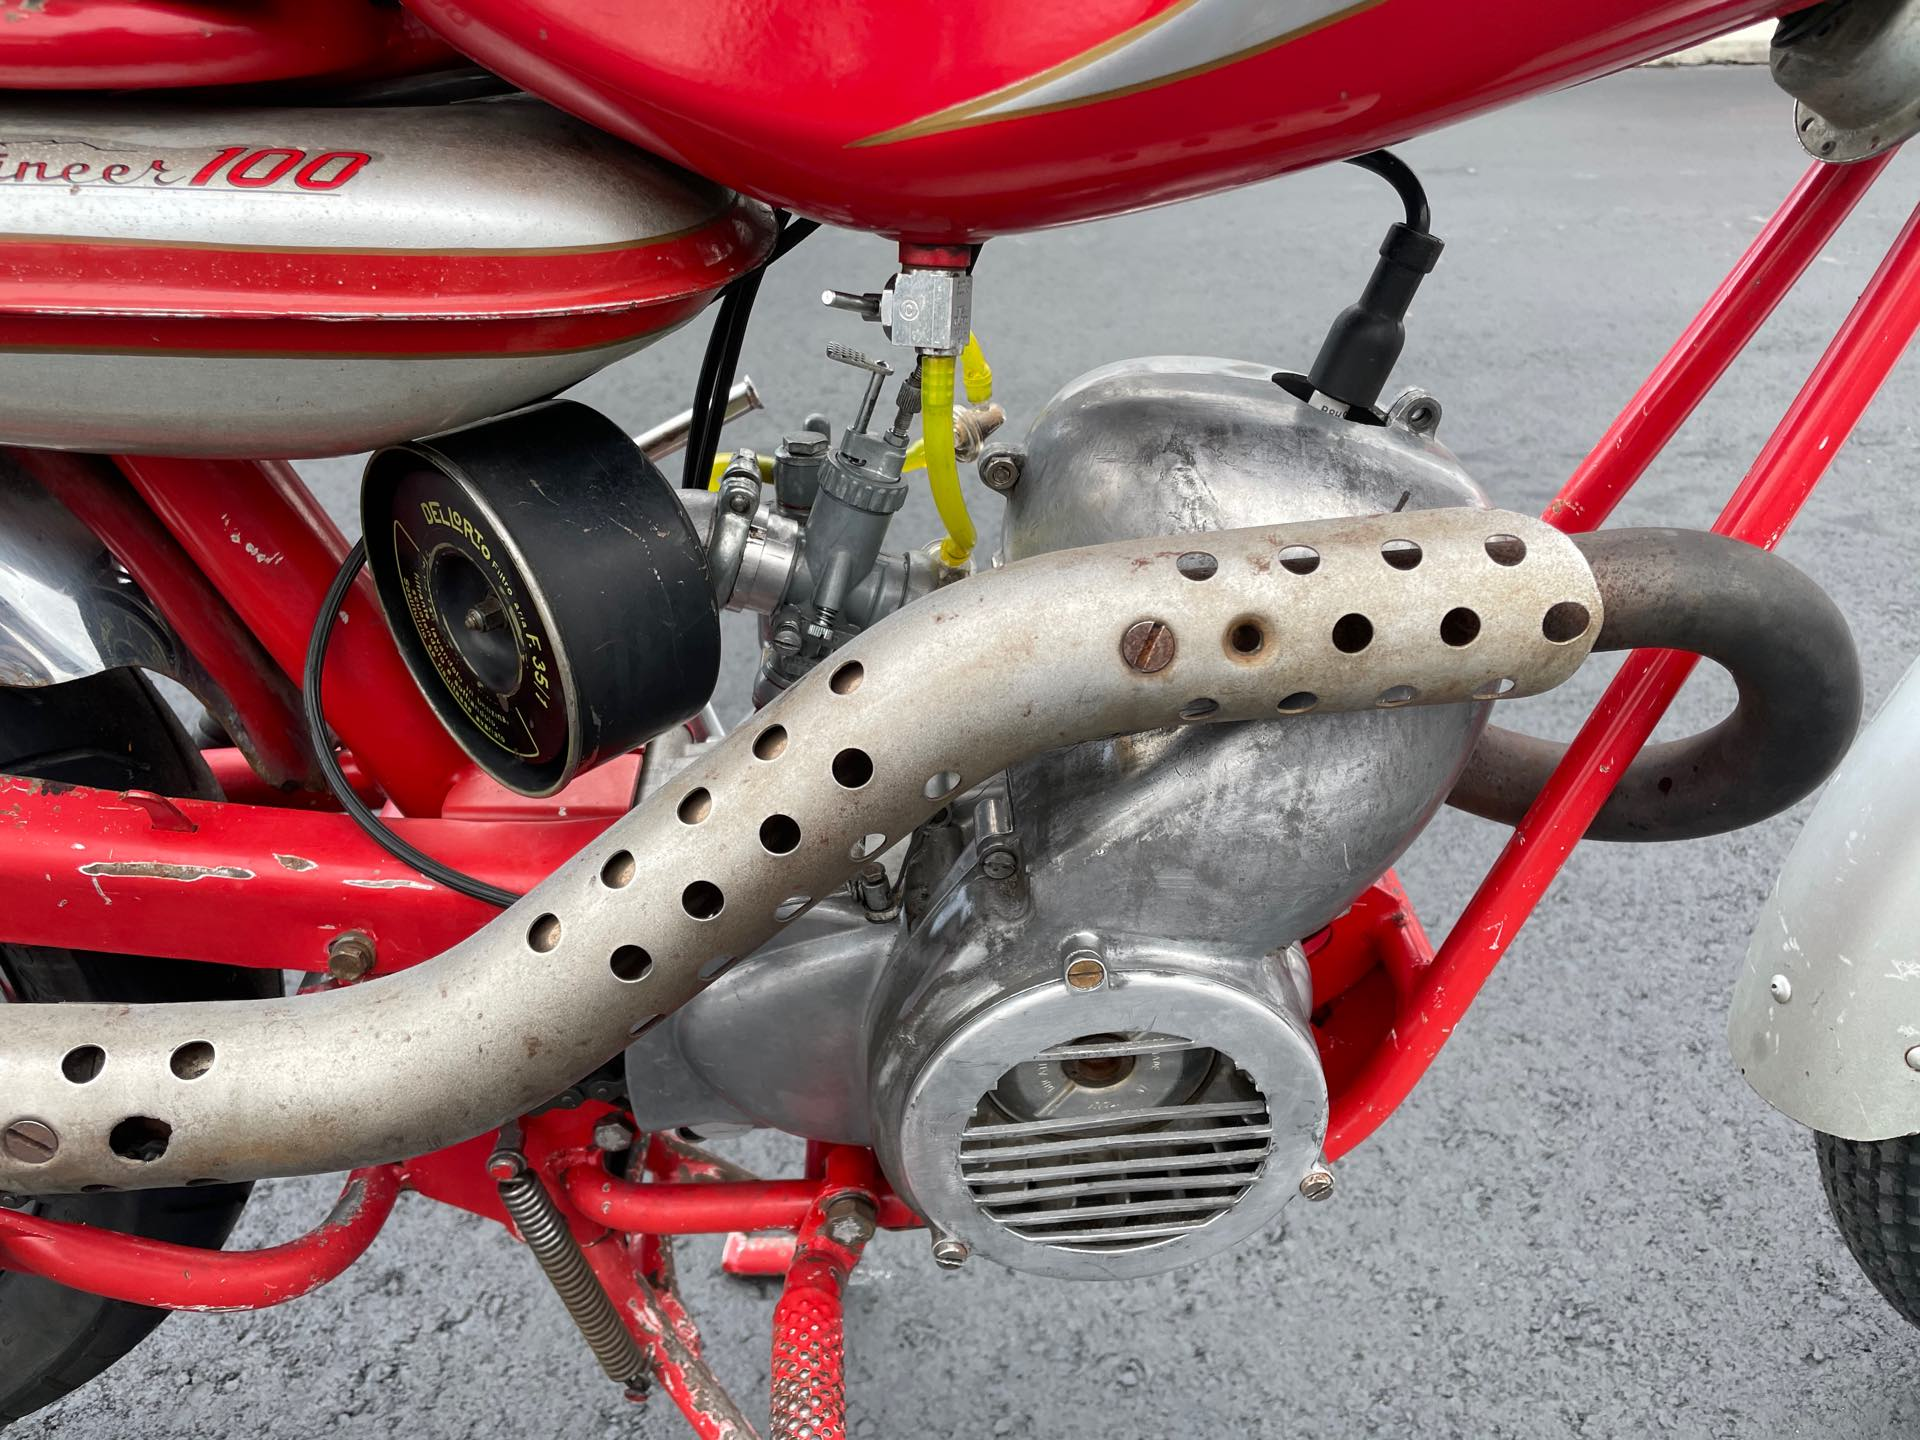 1965 DUCATI 100 Mountaineer at Aces Motorcycles - Fort Collins